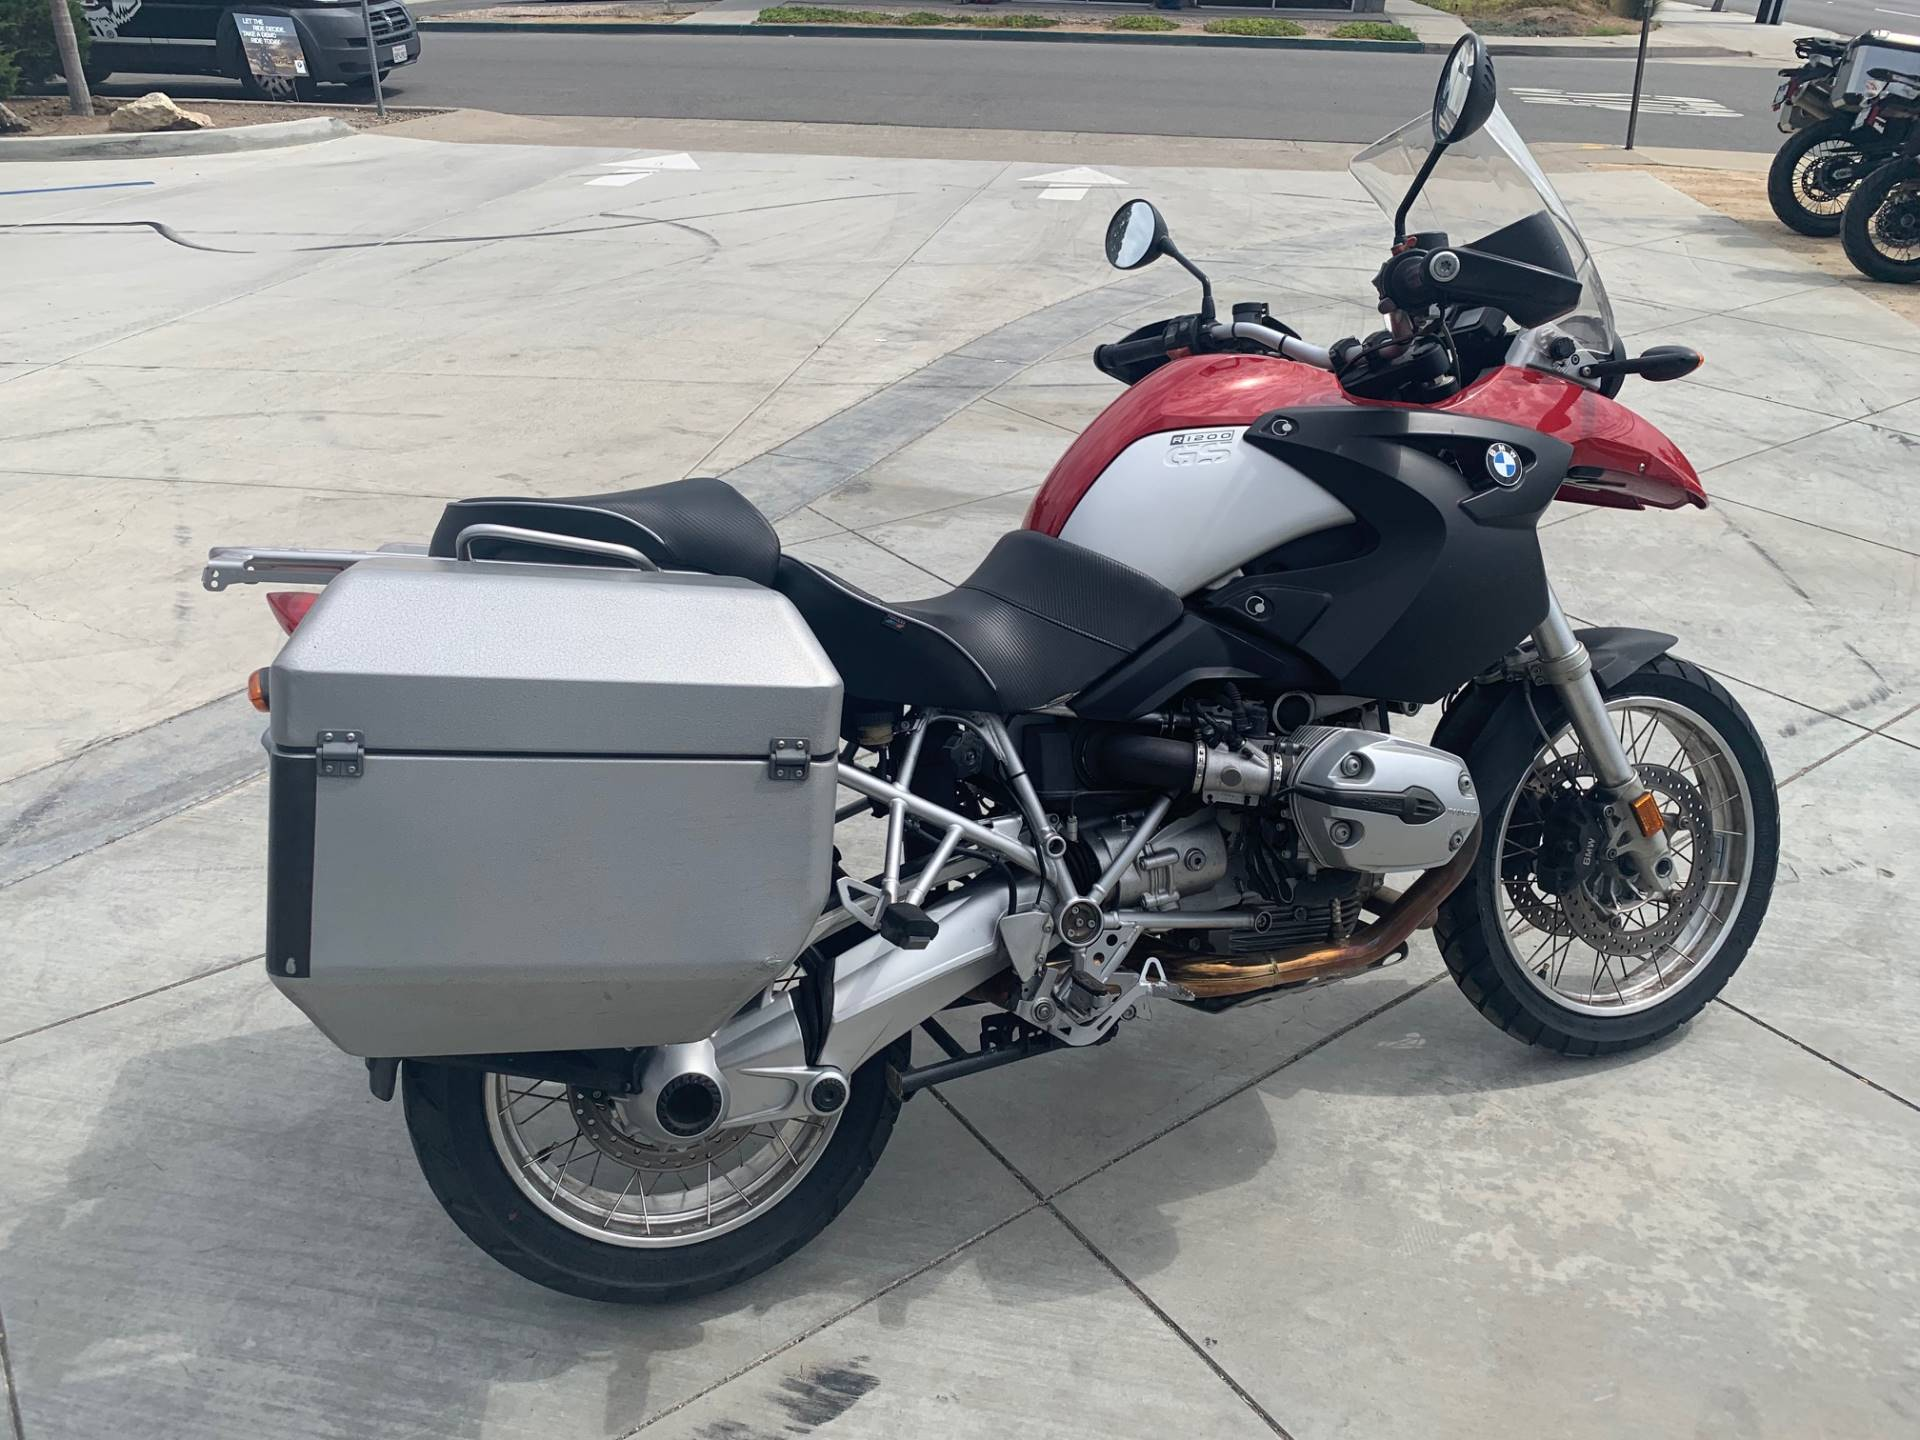 2007 BMW R 1200 GS in Orange, California - Photo 4